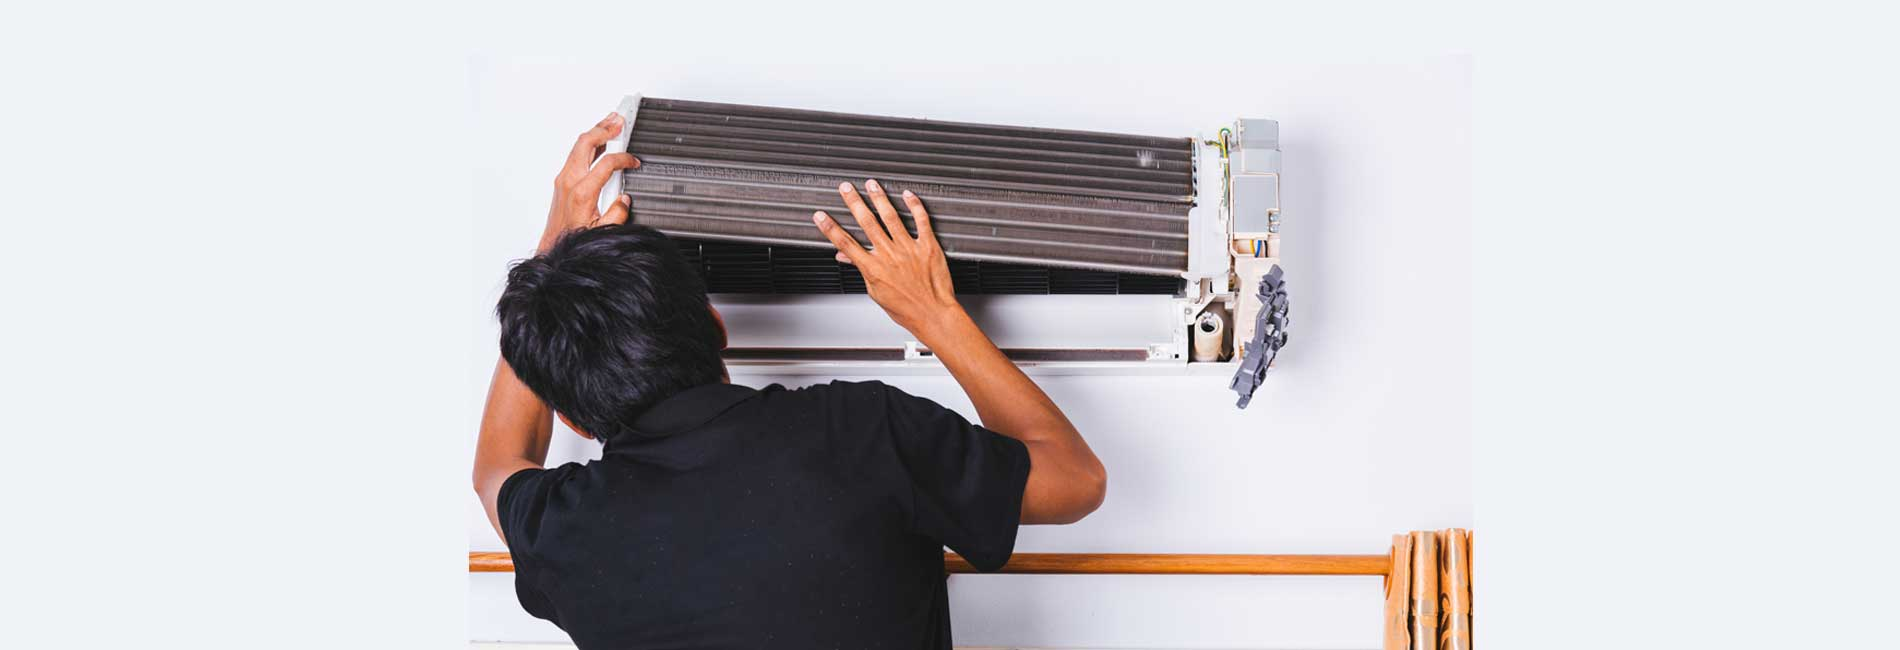 Air Conditioner Repair in Thirumangalam